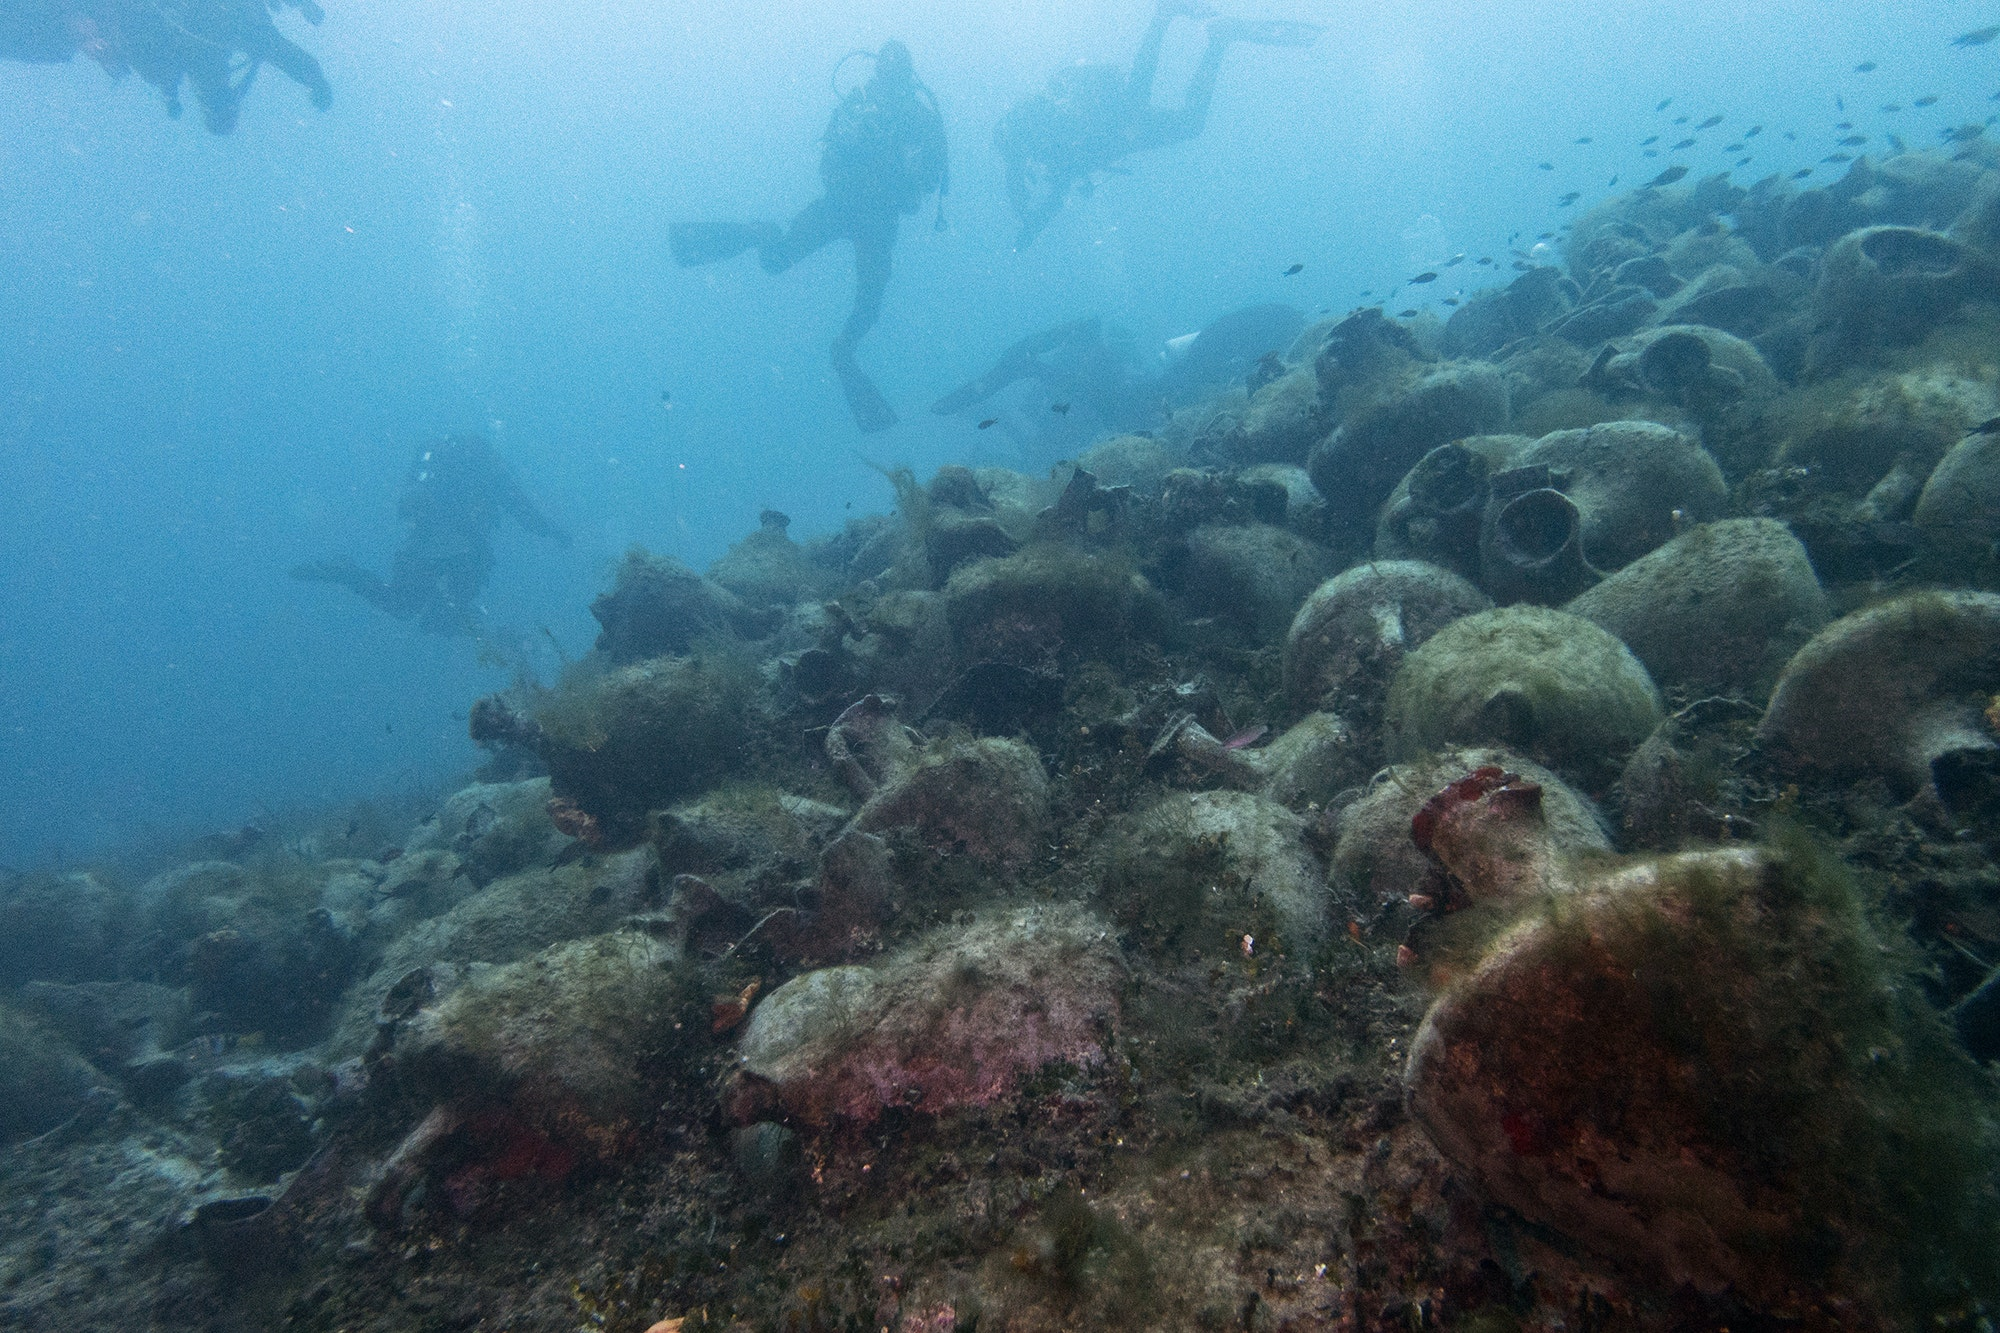 Long Off-Limits, Ancient Greek Shipwreck Opens to Divers as Underwater Museum